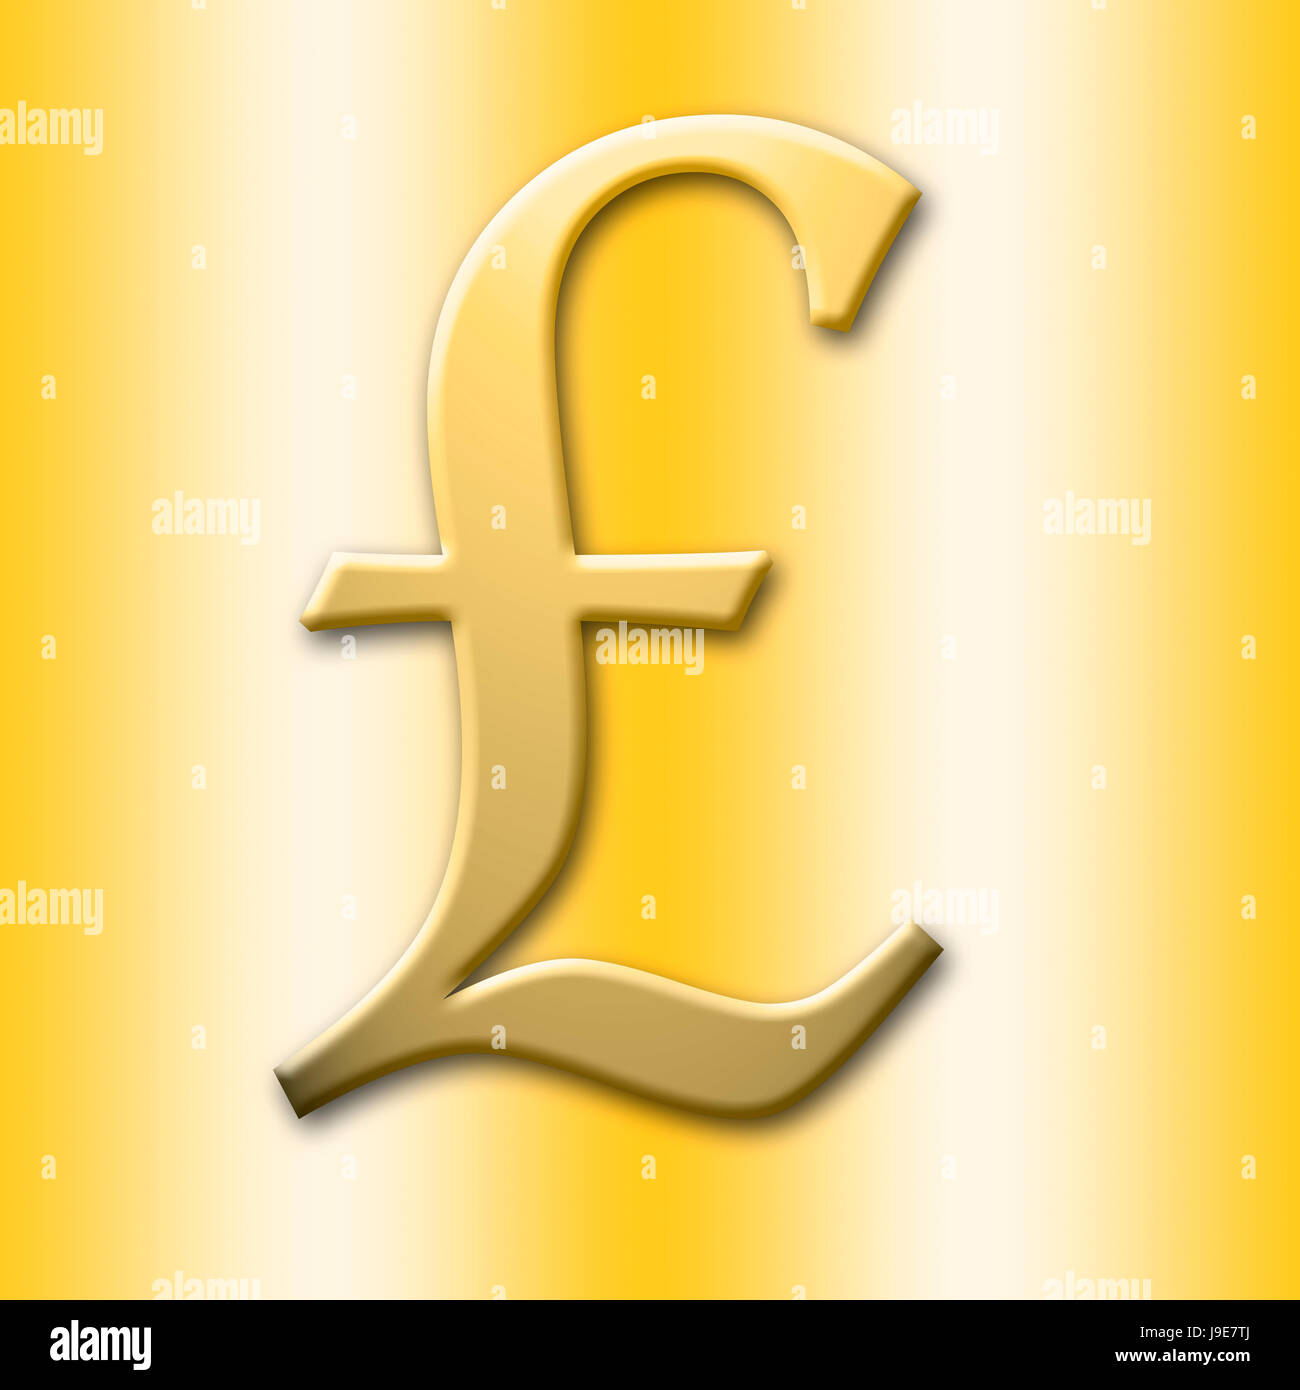 Golden british pound currency sign isolated against the golden golden british pound currency sign isolated against the golden background biocorpaavc Images